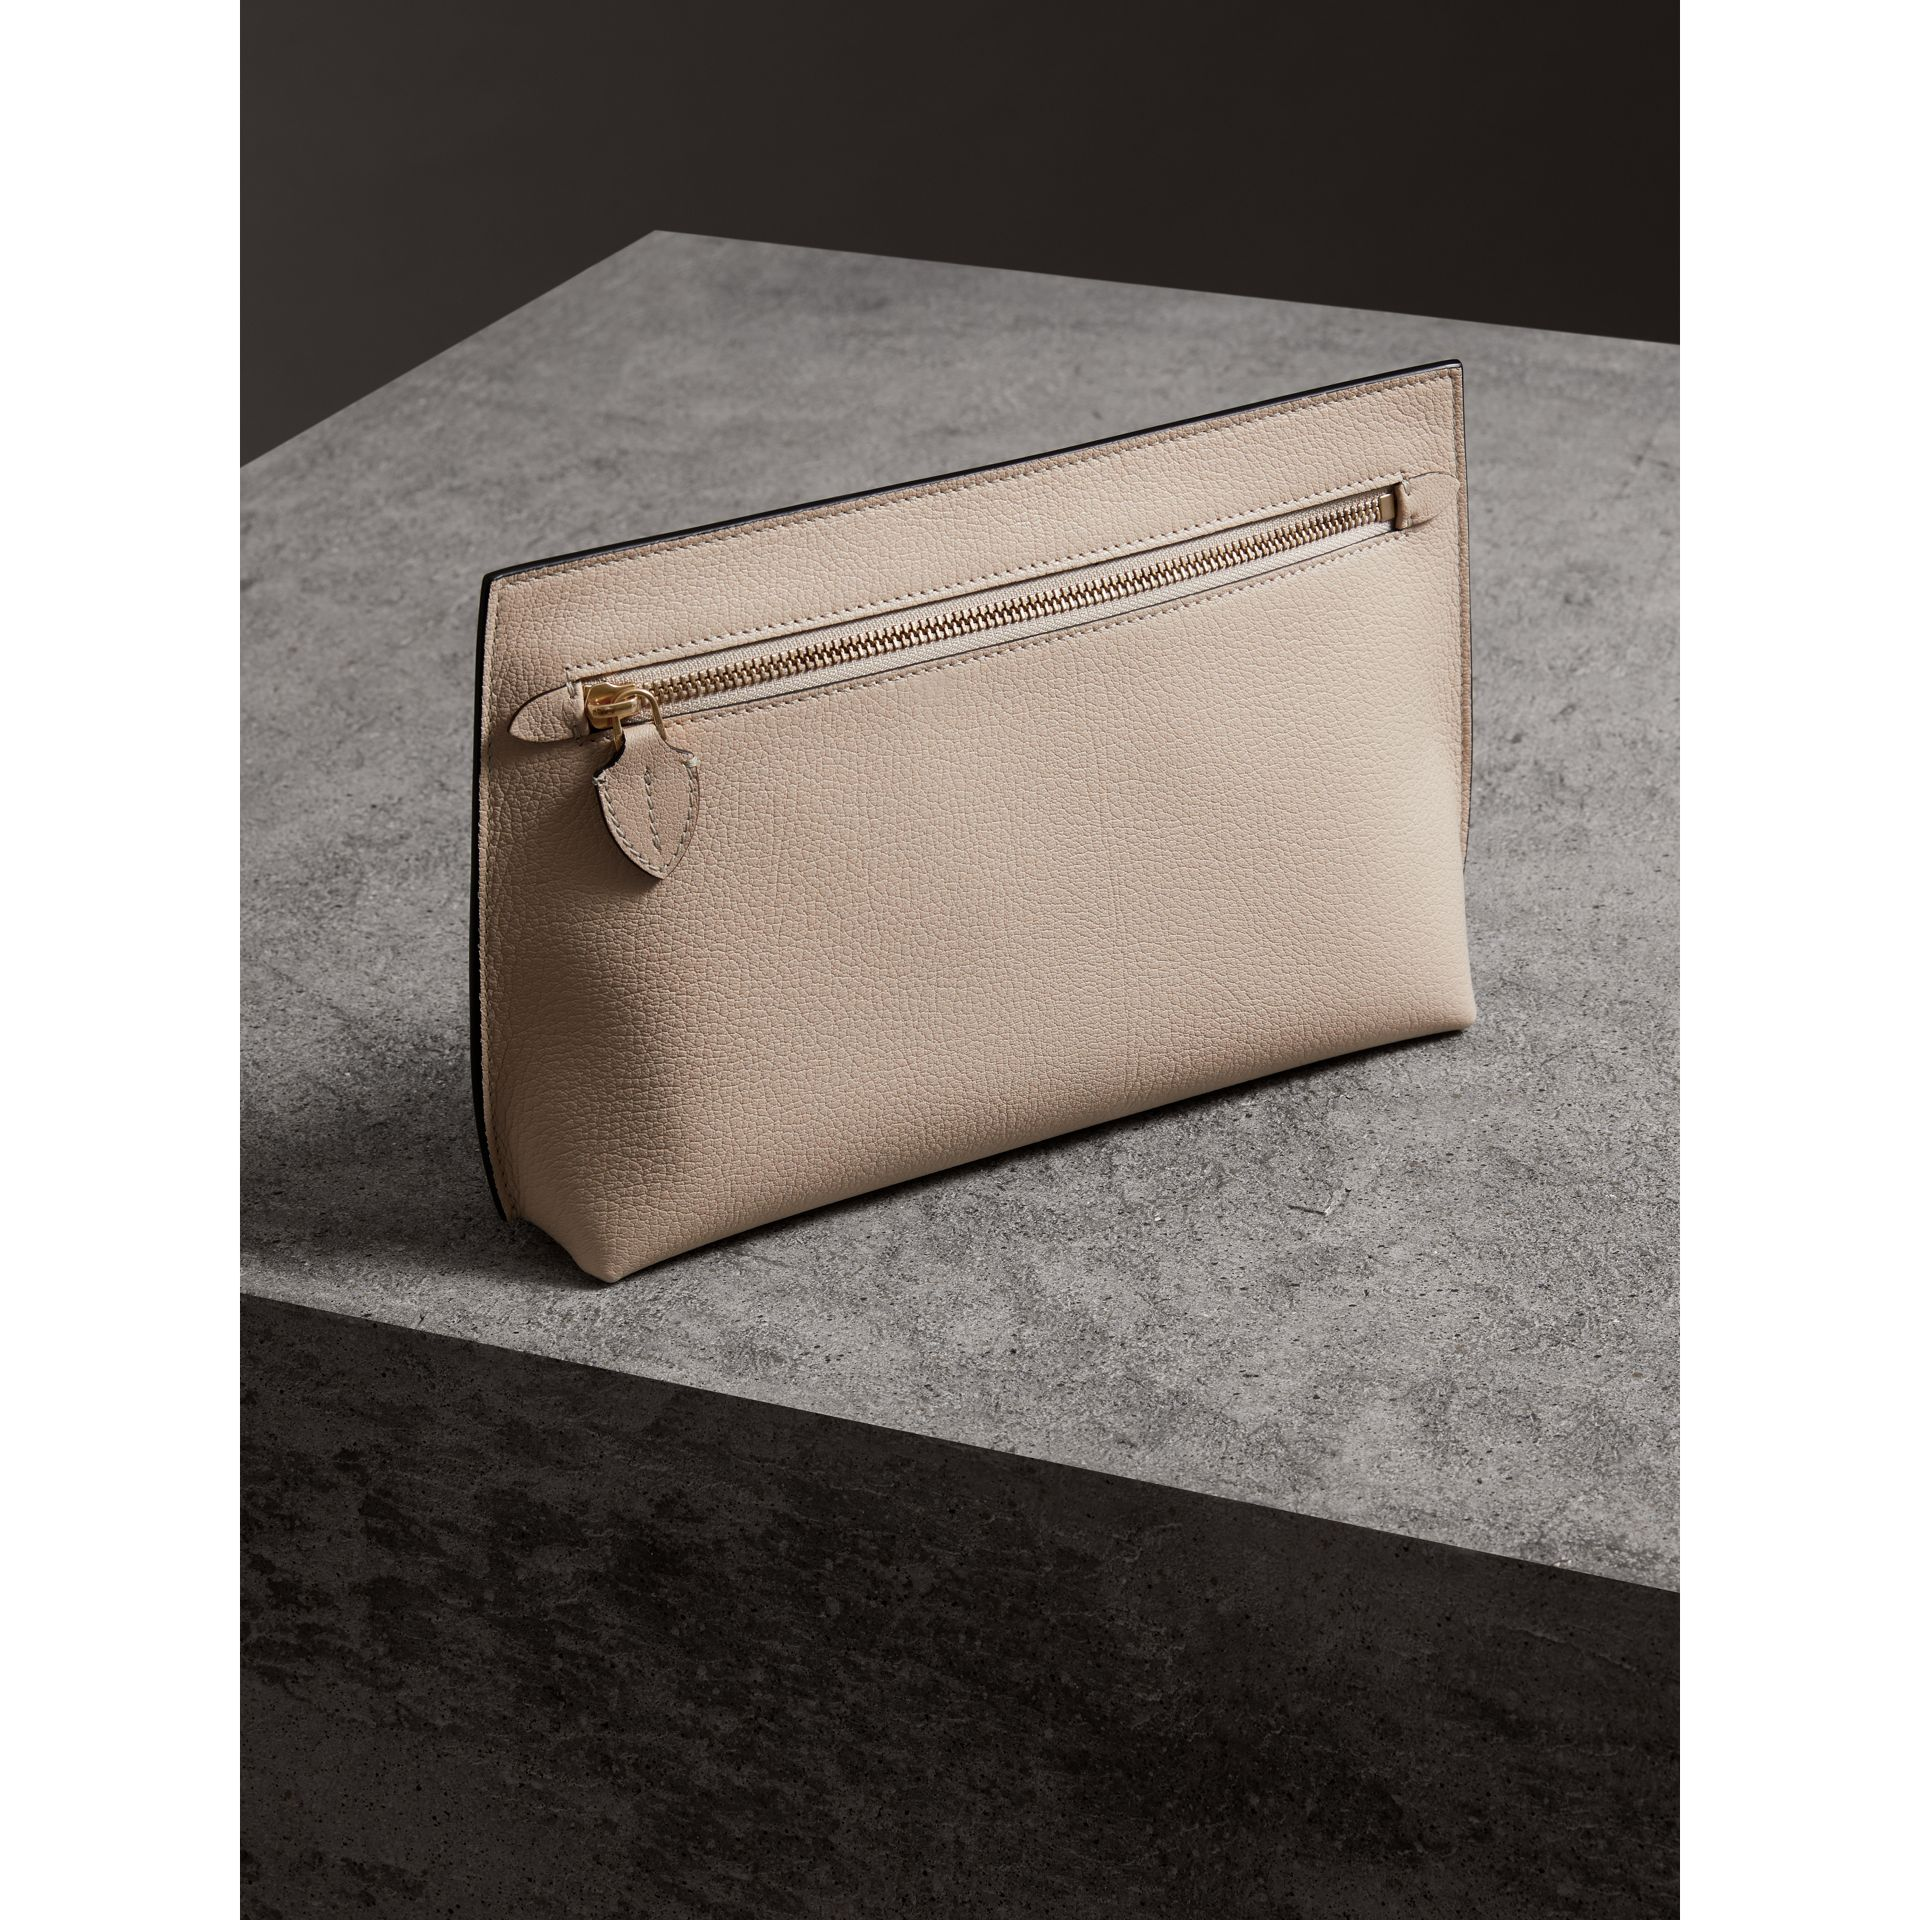 Grainy Leather Wristlet Clutch in Stone - Women | Burberry United Kingdom - gallery image 5